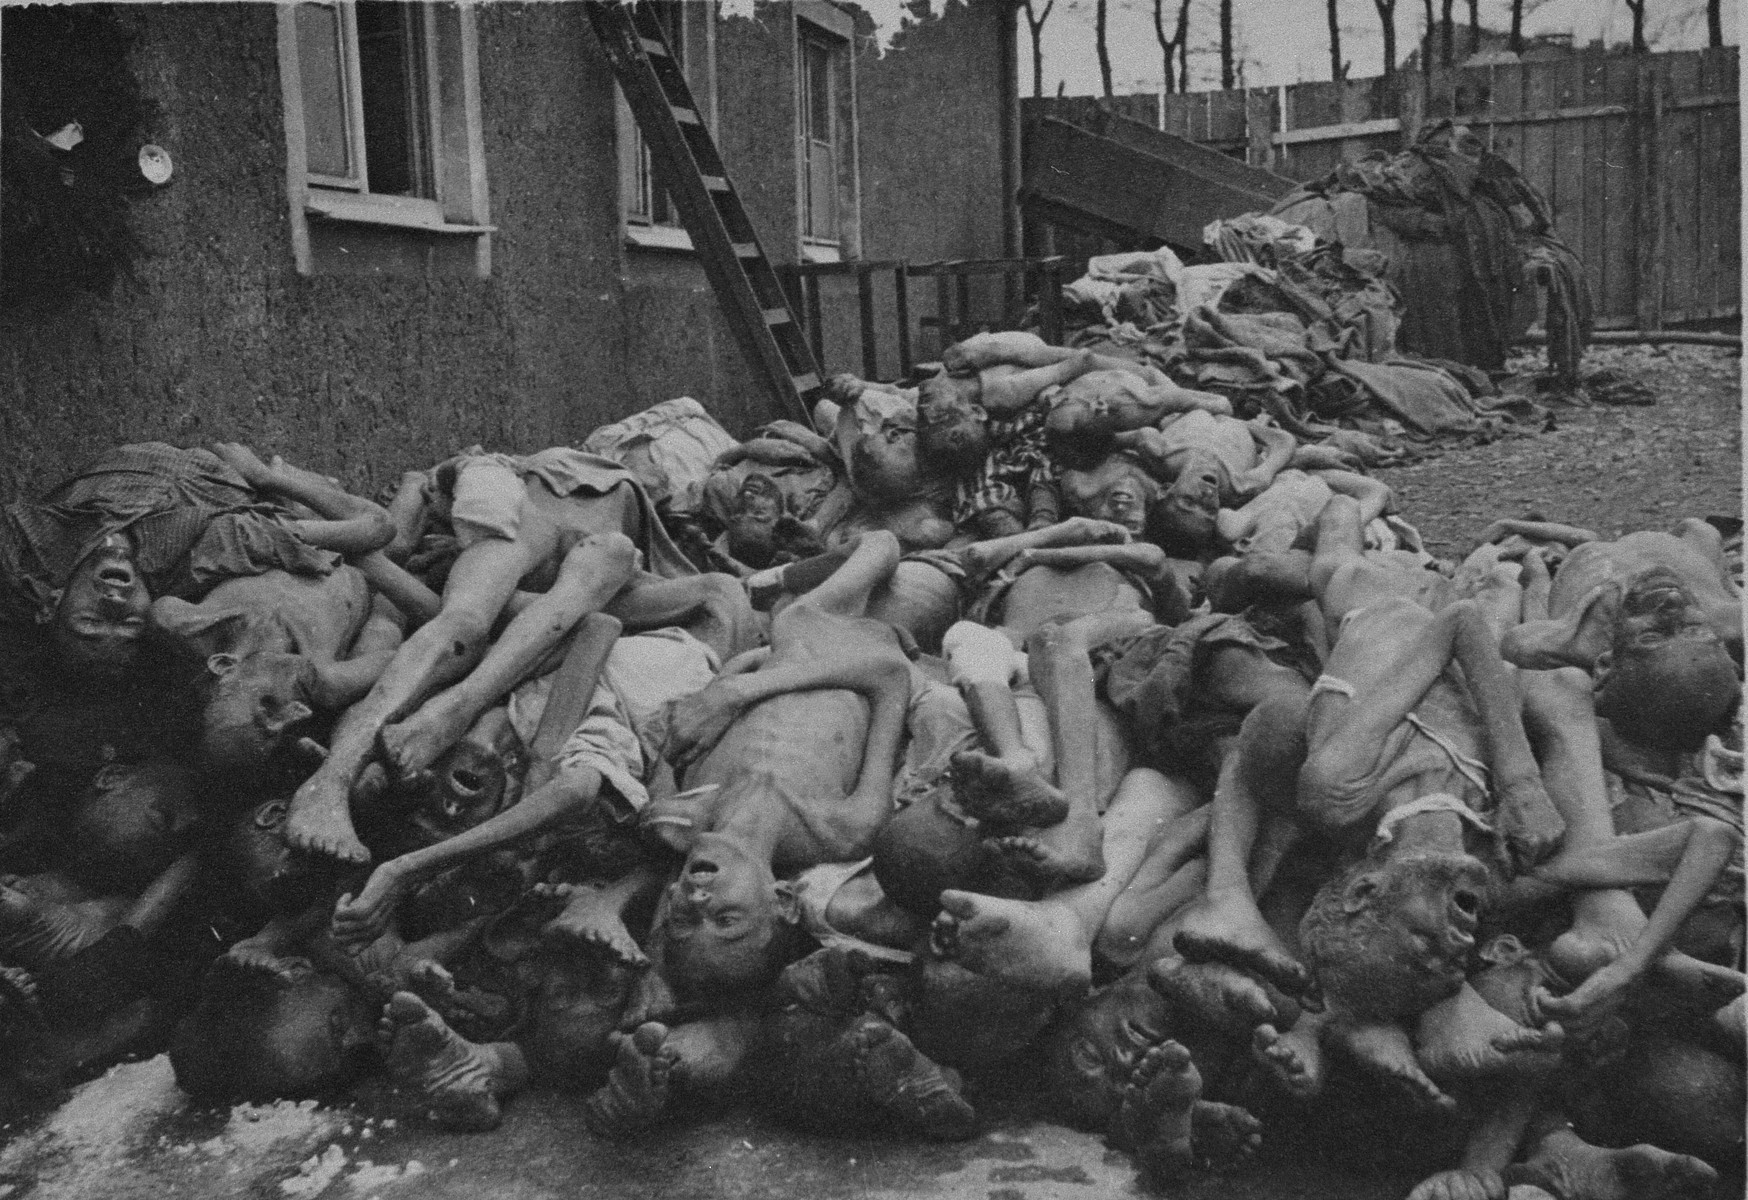 Corpses piled up behind the crematorium in Buchenwald concentration camp.